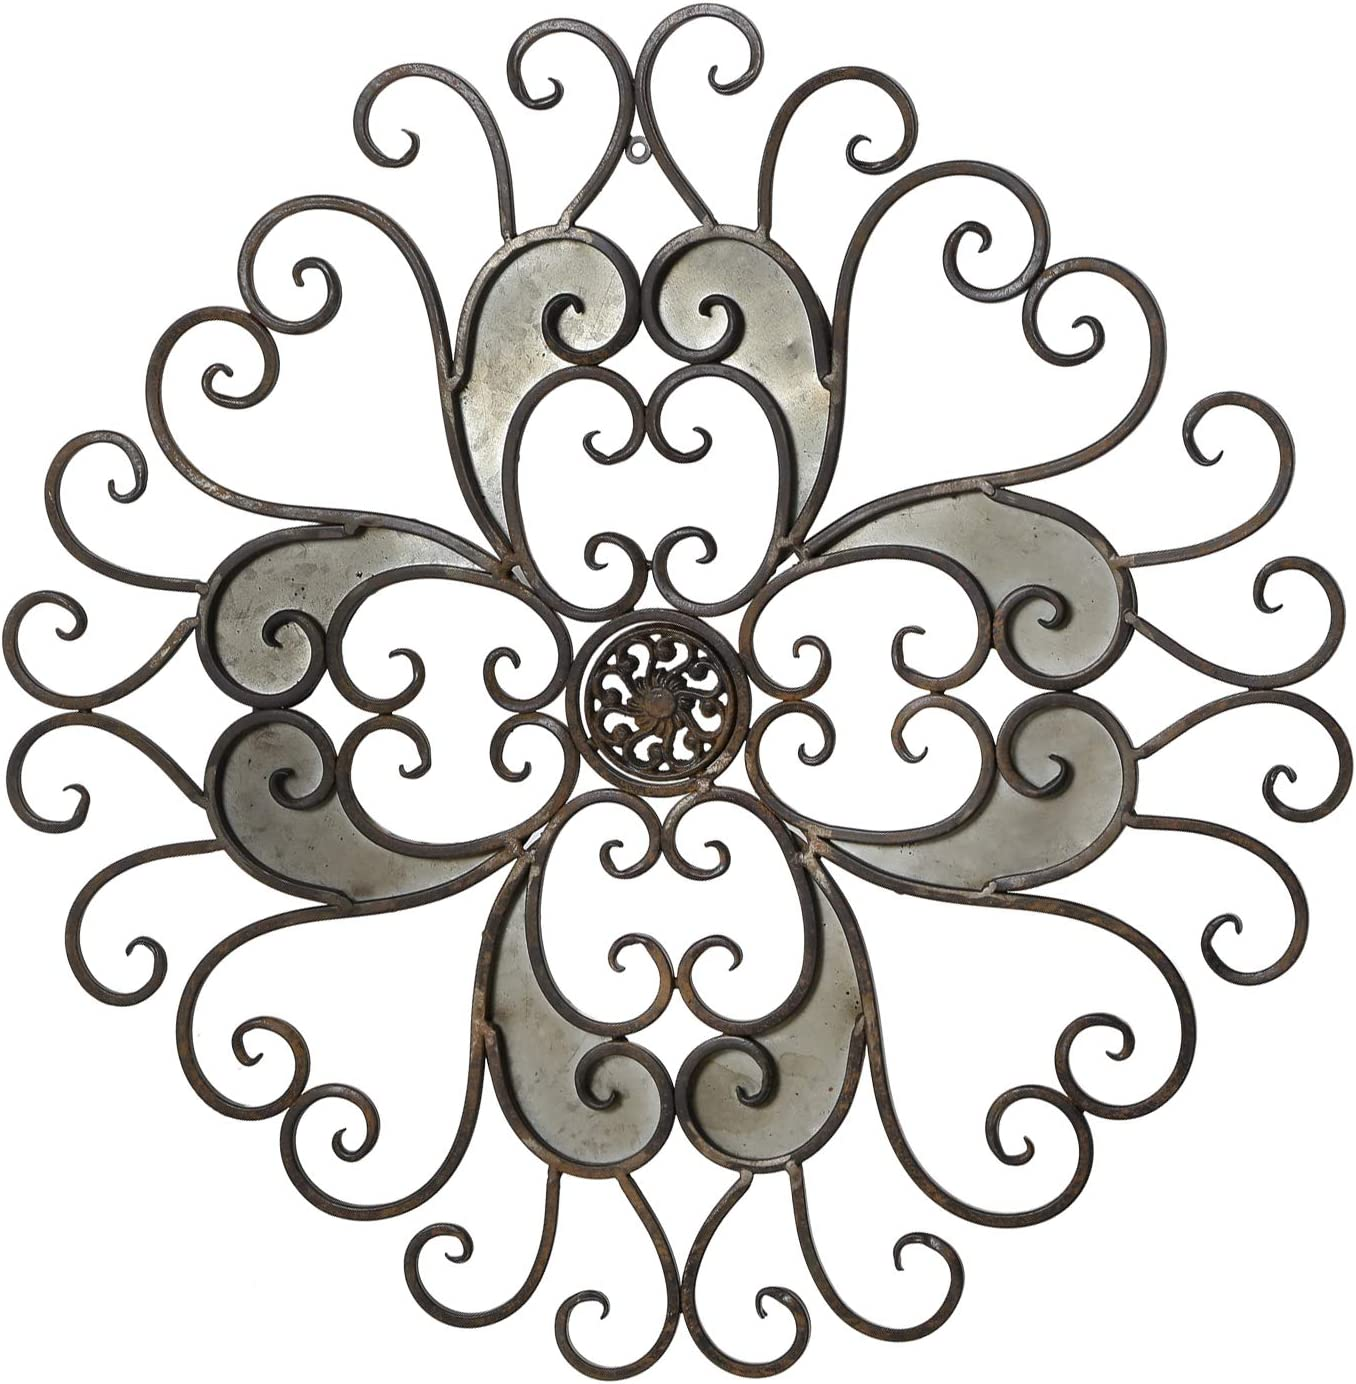 Adeco Rustic Urban Flower Scrolled Design, Metal Wall Decor For Nature Home Art Decoration & Kitchen Holiday Wall Decorations, Christmas Wall Art Gifts - 22.5x22.5 Inches